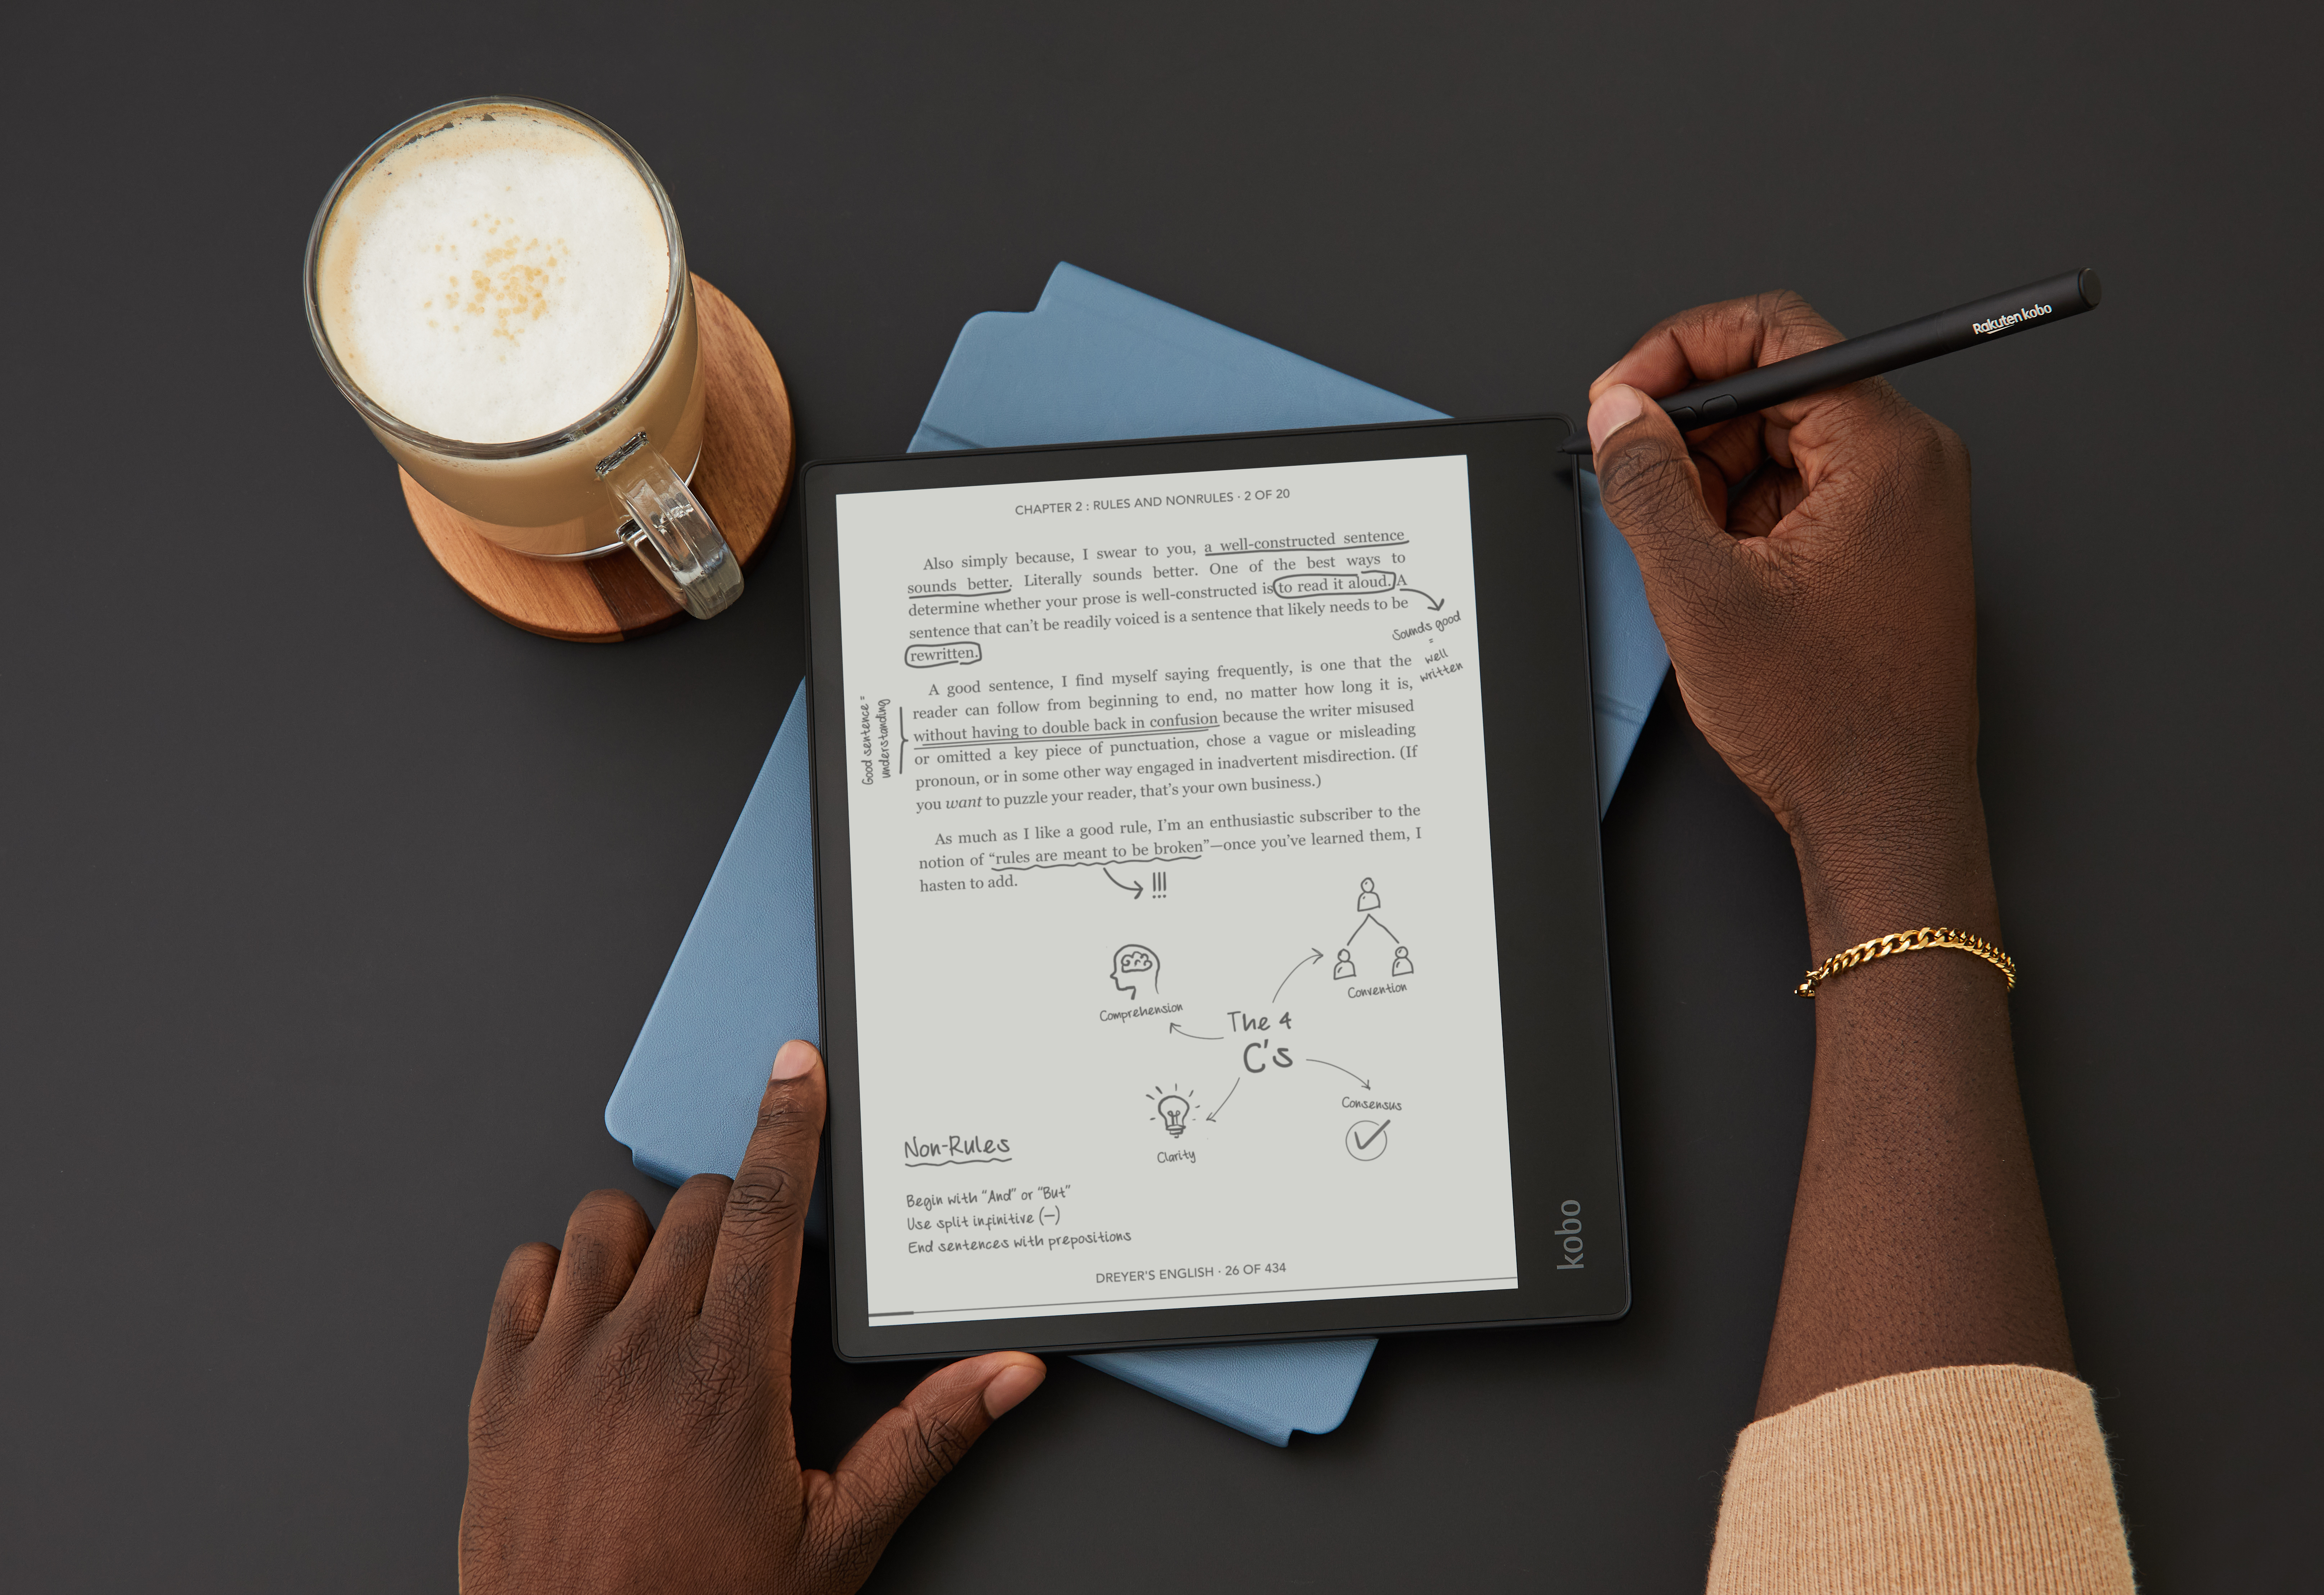 Kobo says that the Elipsa is aimed at bridging the gap between print and ebooks, between reading and creating